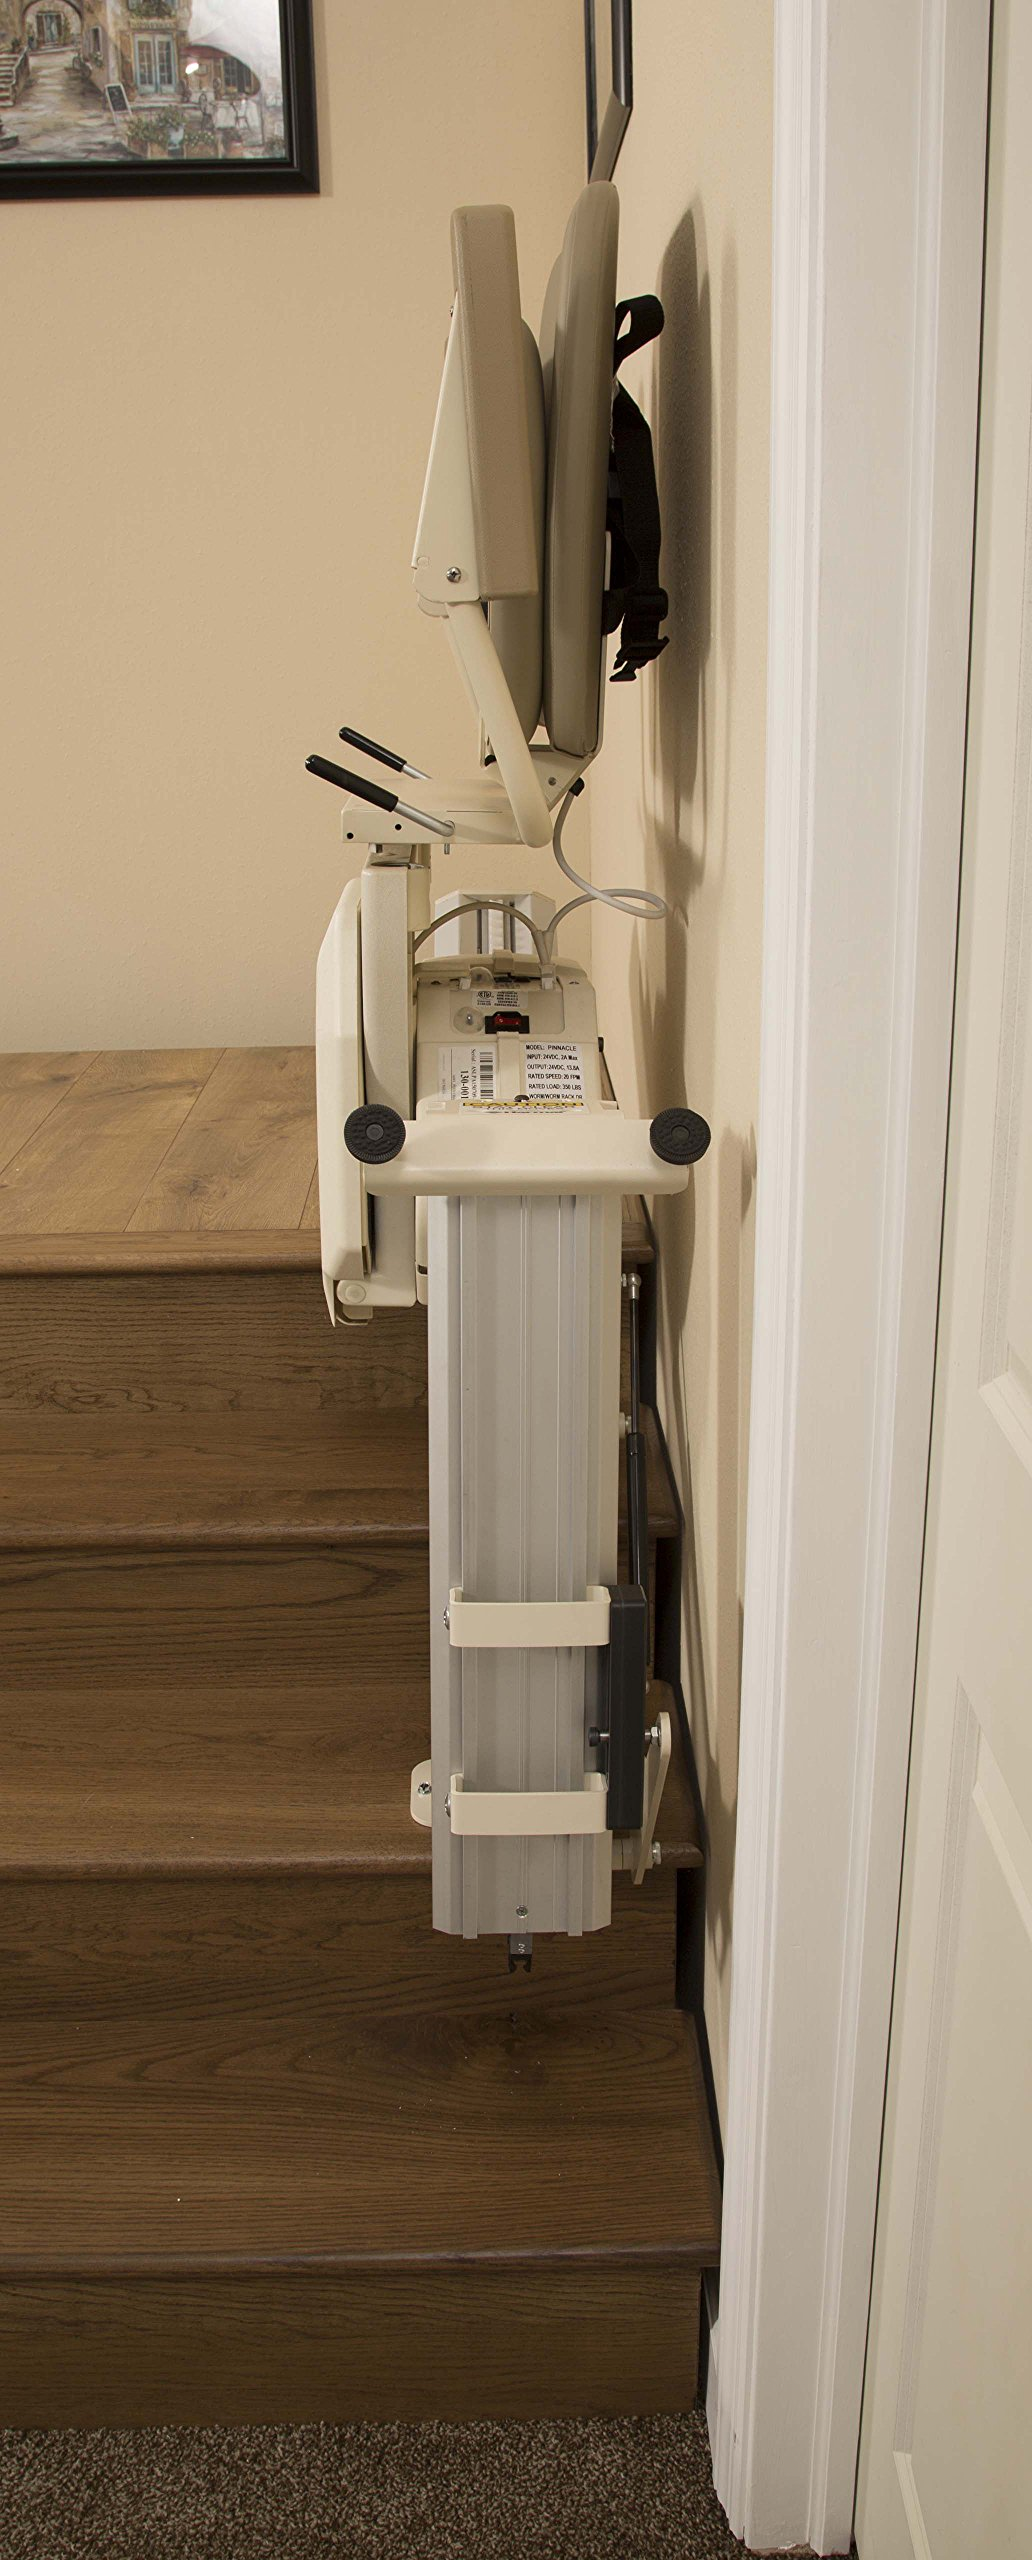 Nautilus Stair Lift with Hinged Rail - Lifetime Warranty on Motor & Circuit Board